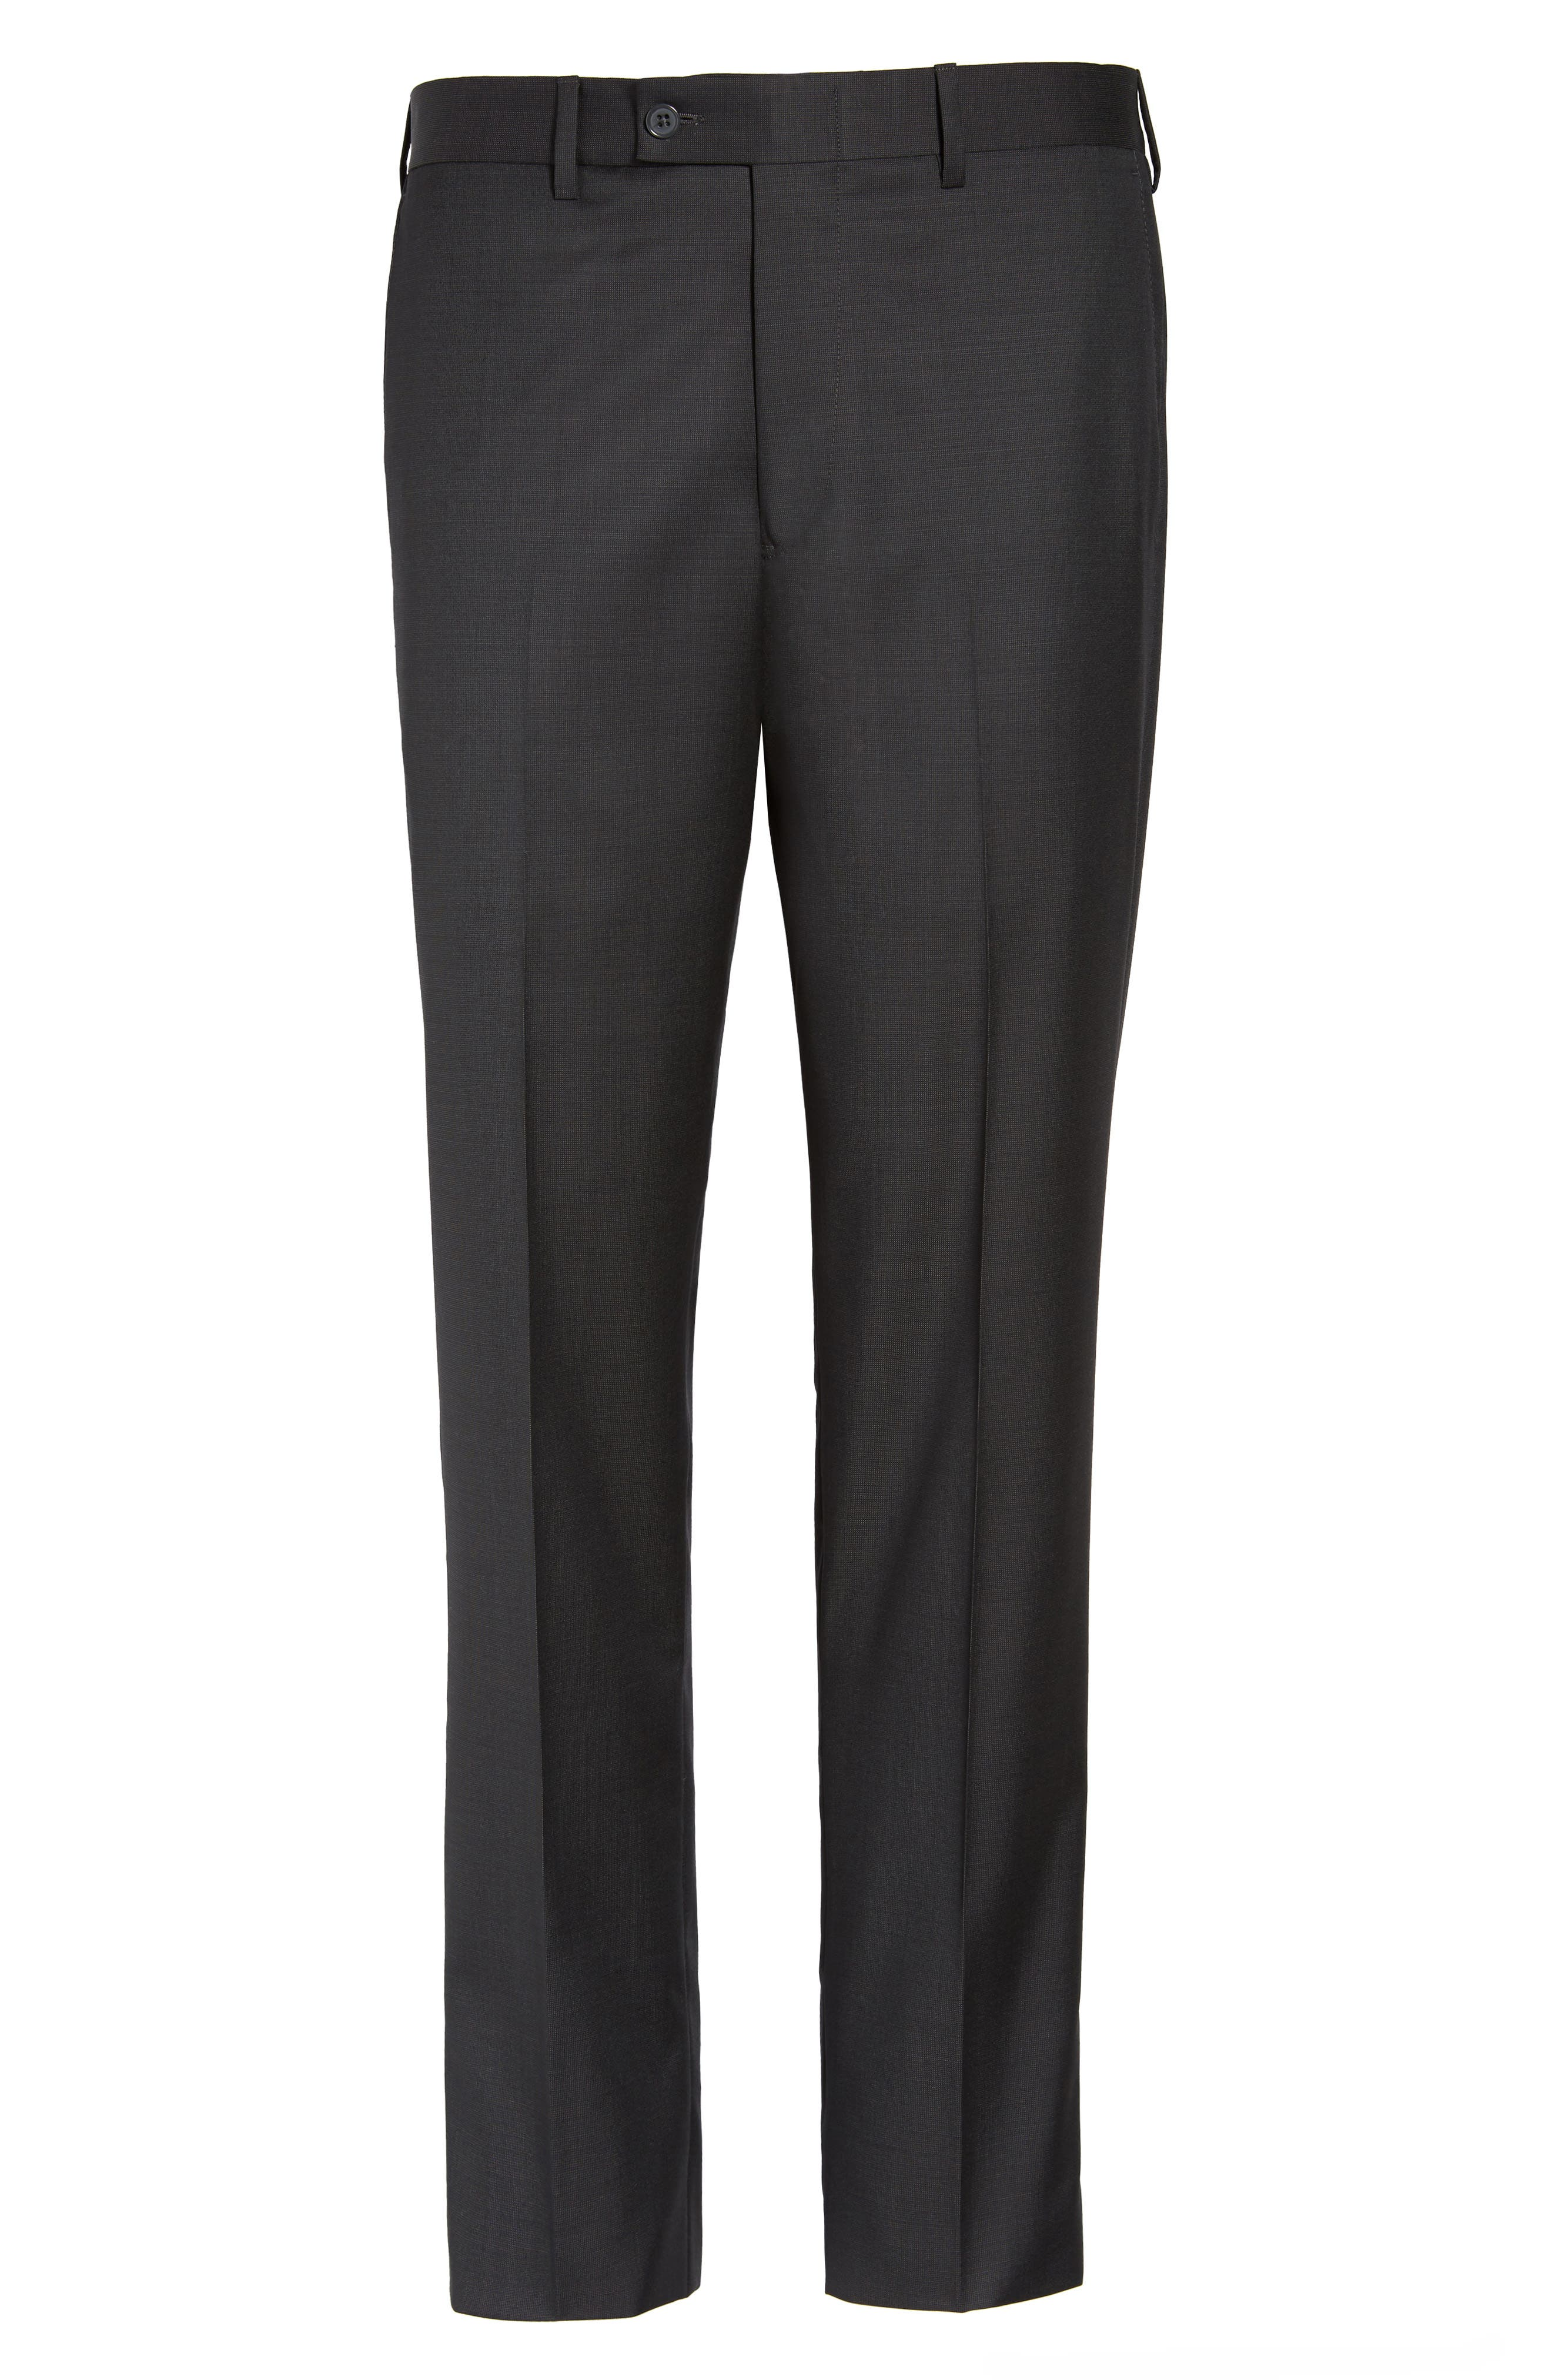 Flat Front Solid Wool Trousers,                             Alternate thumbnail 6, color,                             010